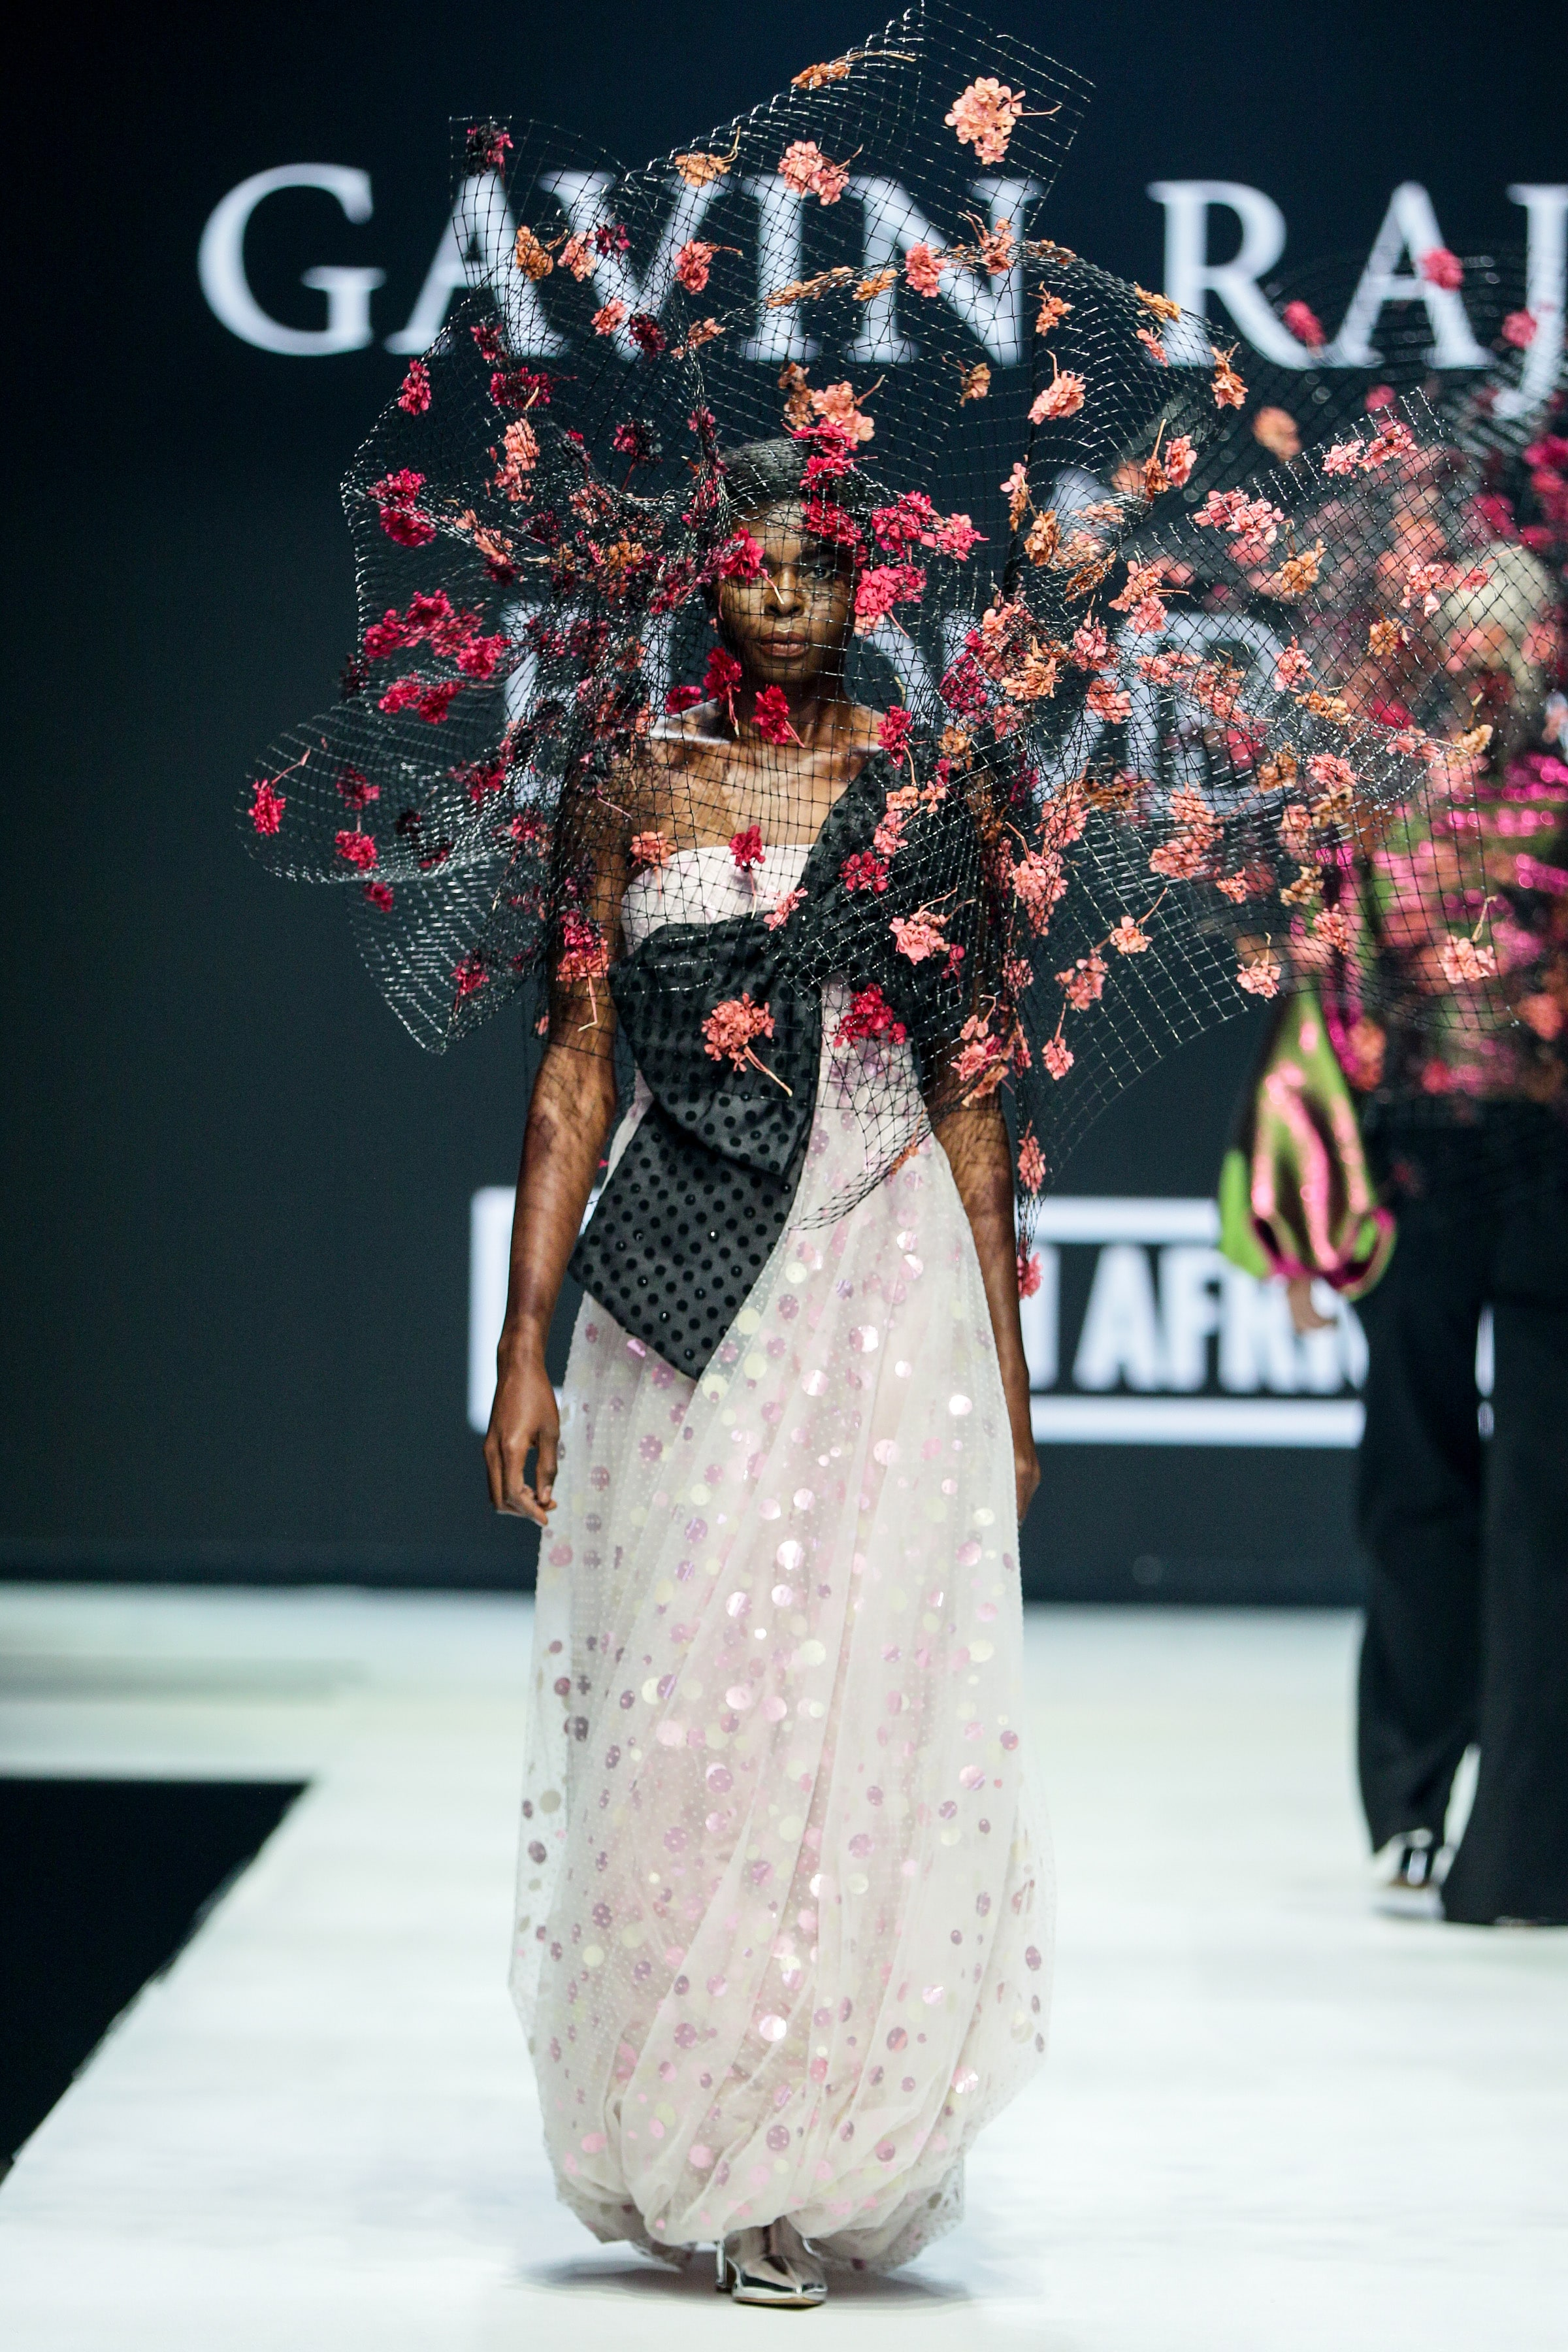 Gavin-rajah-afi-fashion-week-johannesburg-2019-the-most-rave-worthy-designs-from-the-runways-2019-2020